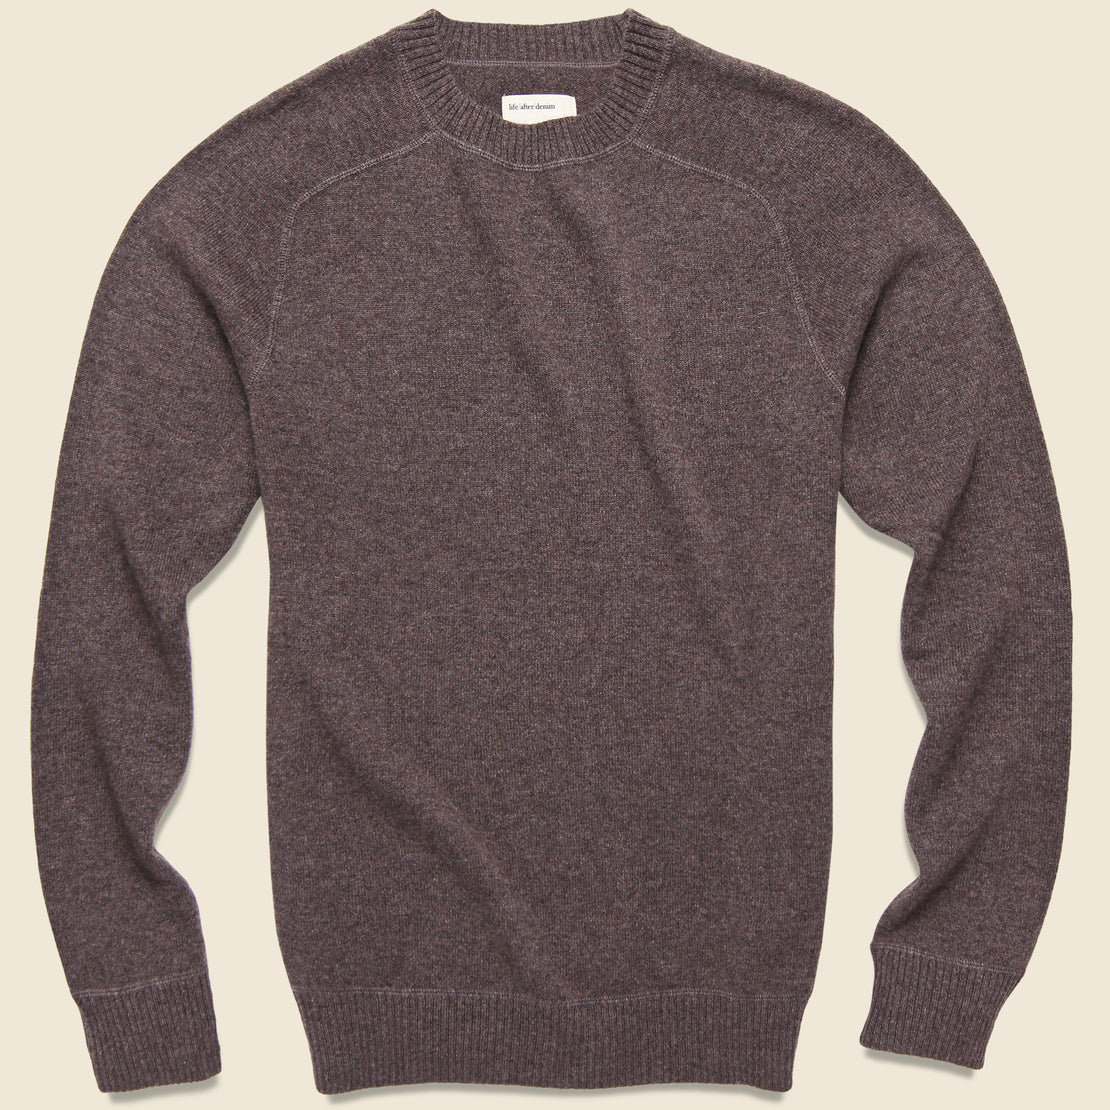 Life After Denim Columbia Cashmere Sweater - Heather Caribou